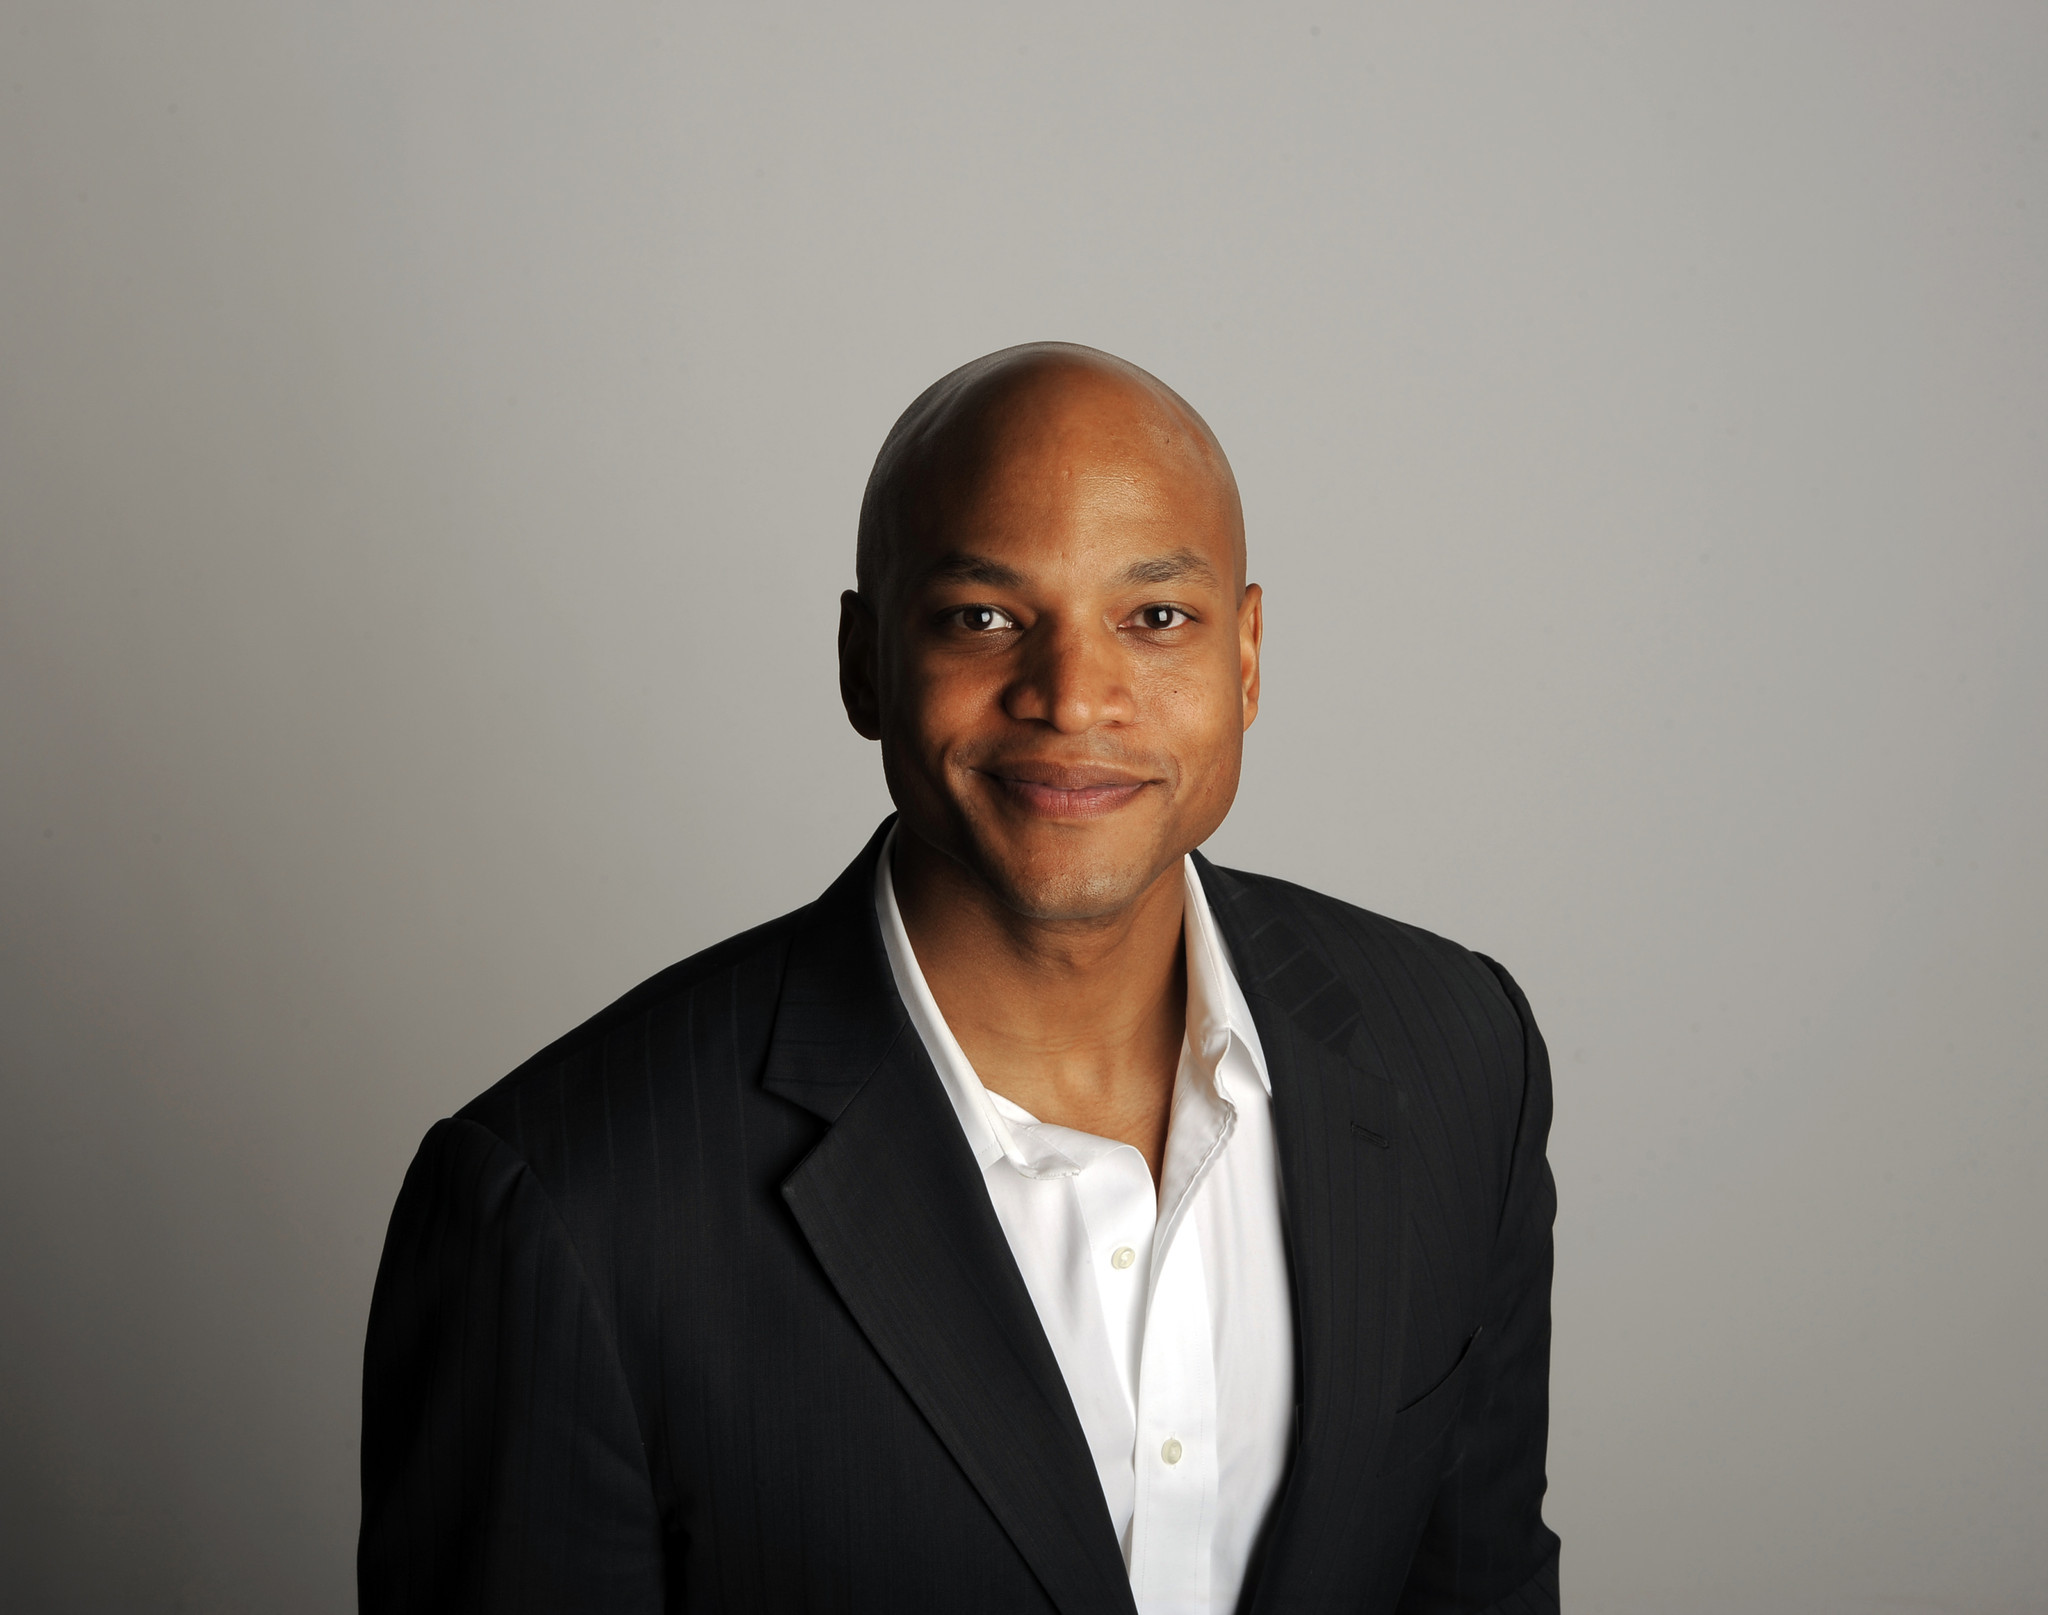 wes moore Wes moore is a decorated army combat veteran, youth advocate and ceo of bridgeedu, a national initiative focusing on addressing the college completion and career placement crisis by reinventing the freshman year of college.